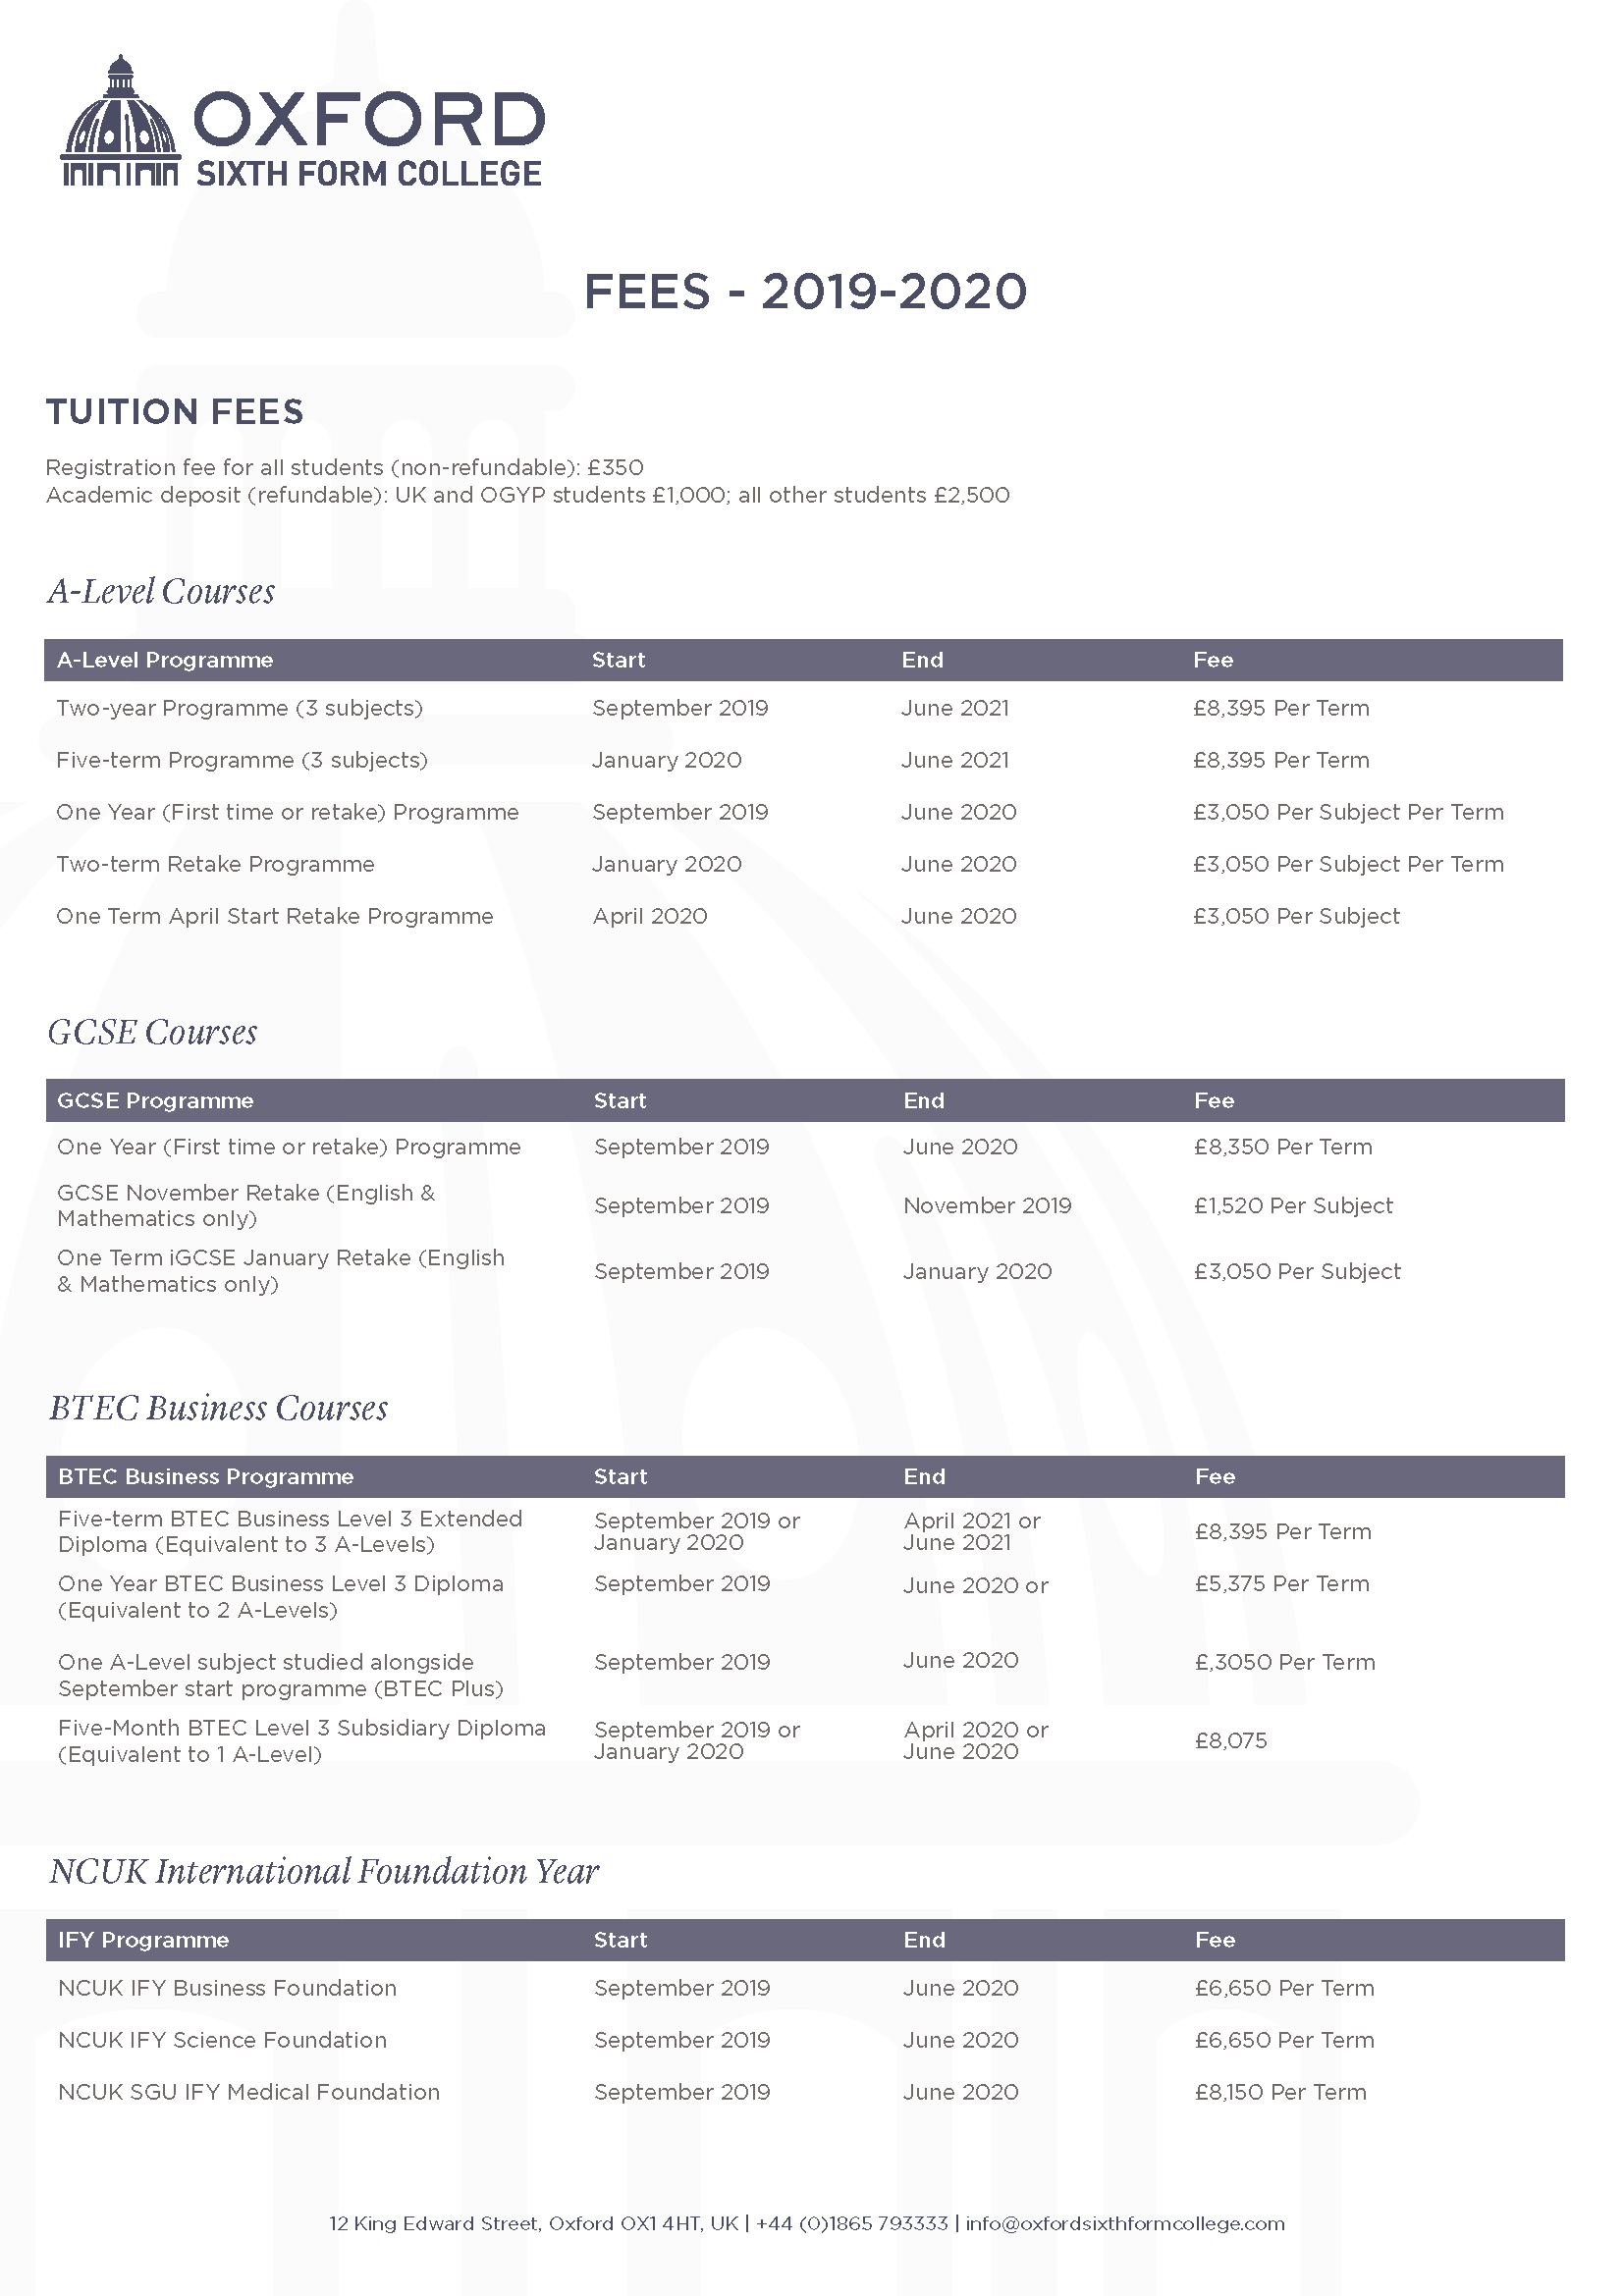 Oxford Sixth Form College 2019-20 Fees